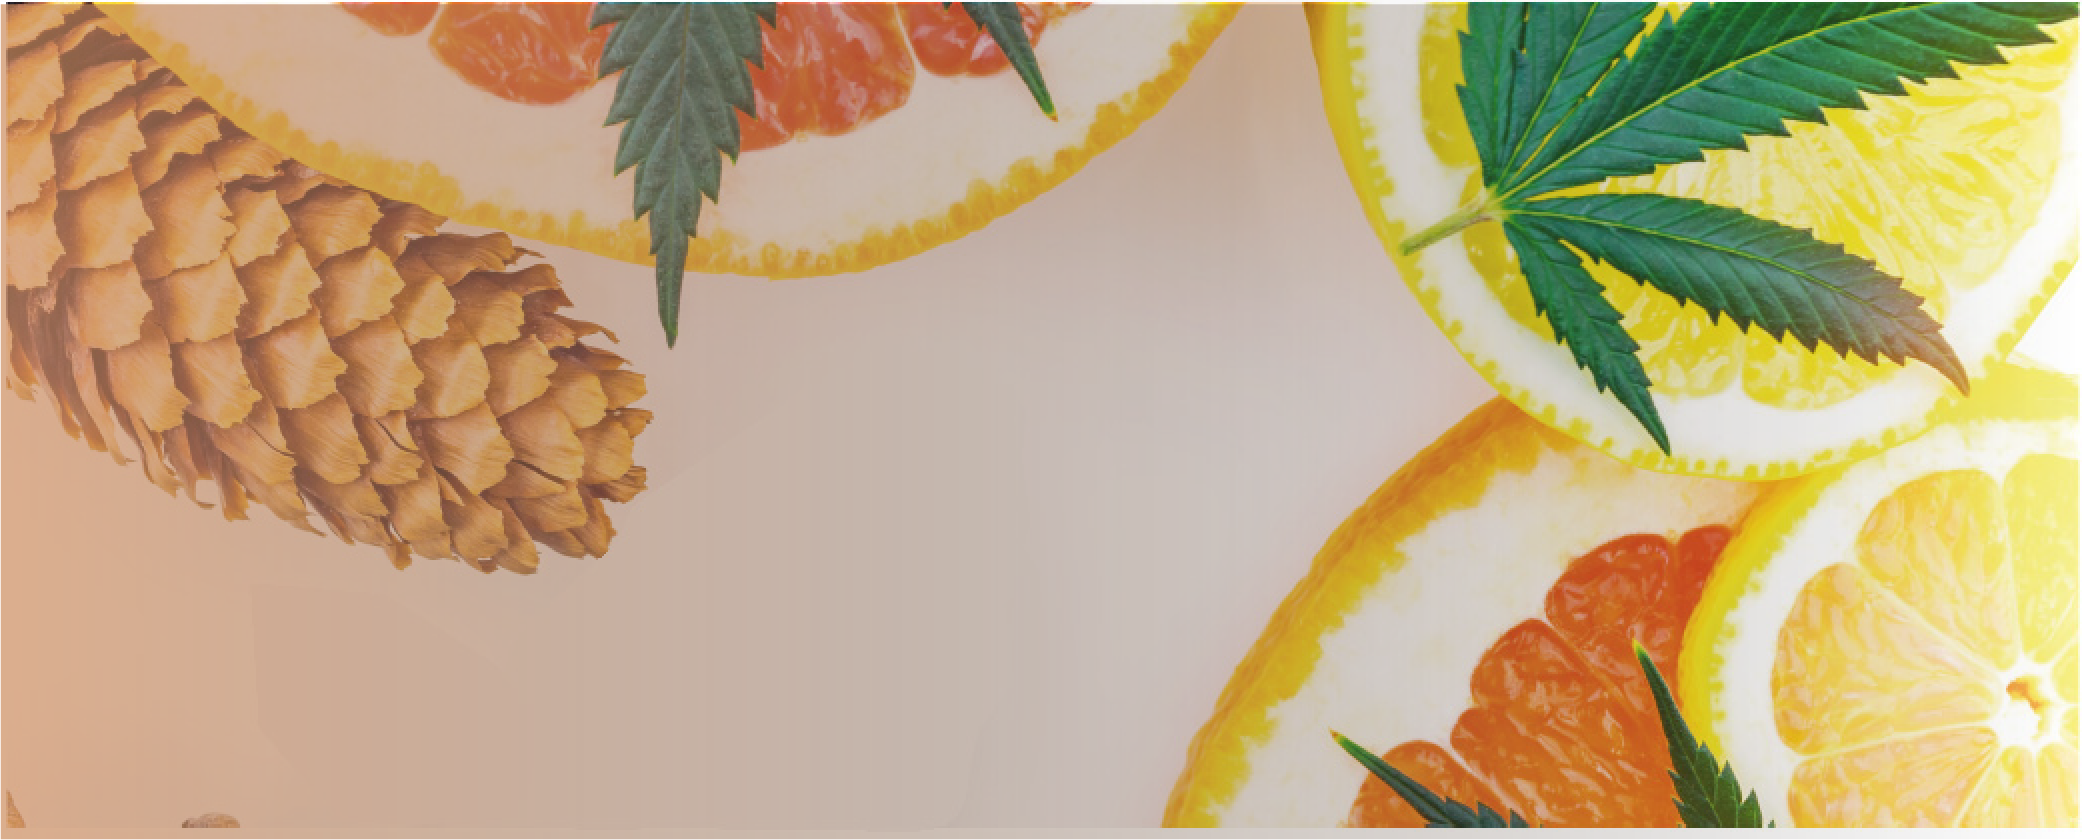 What are Terpenes and flavonoids? Here's our ultimate guide!